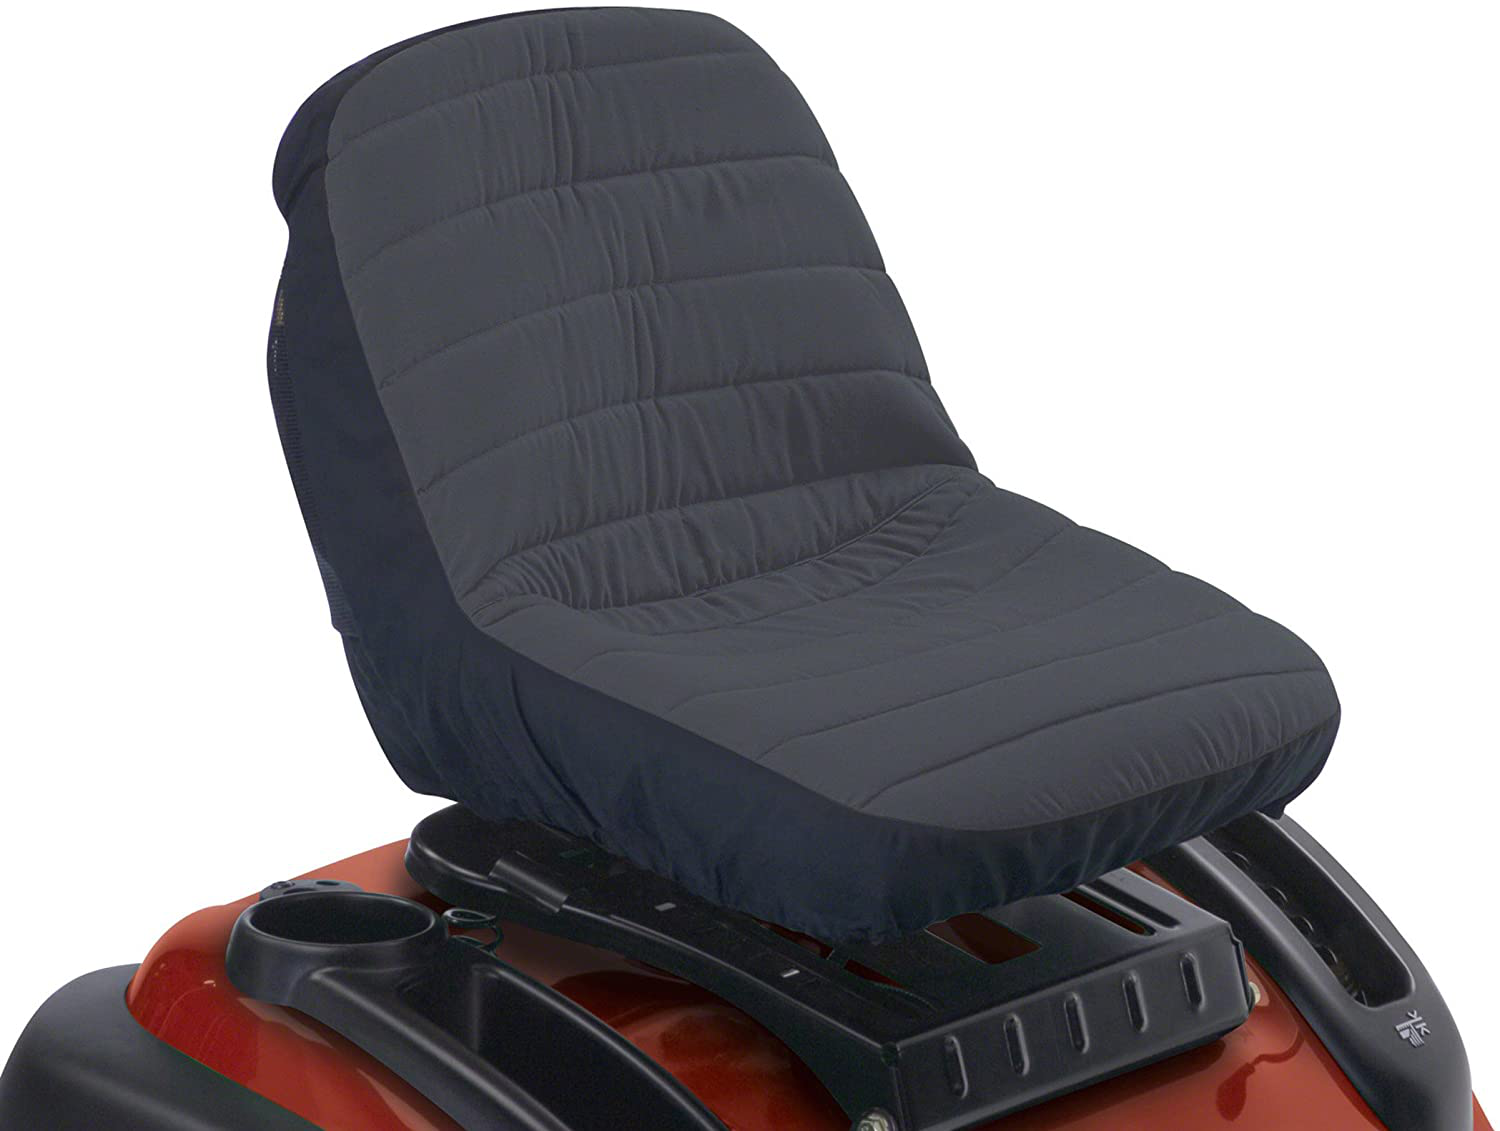 Classic Accessories Deluxe Riding Lawn Mower Seat Cover, Med